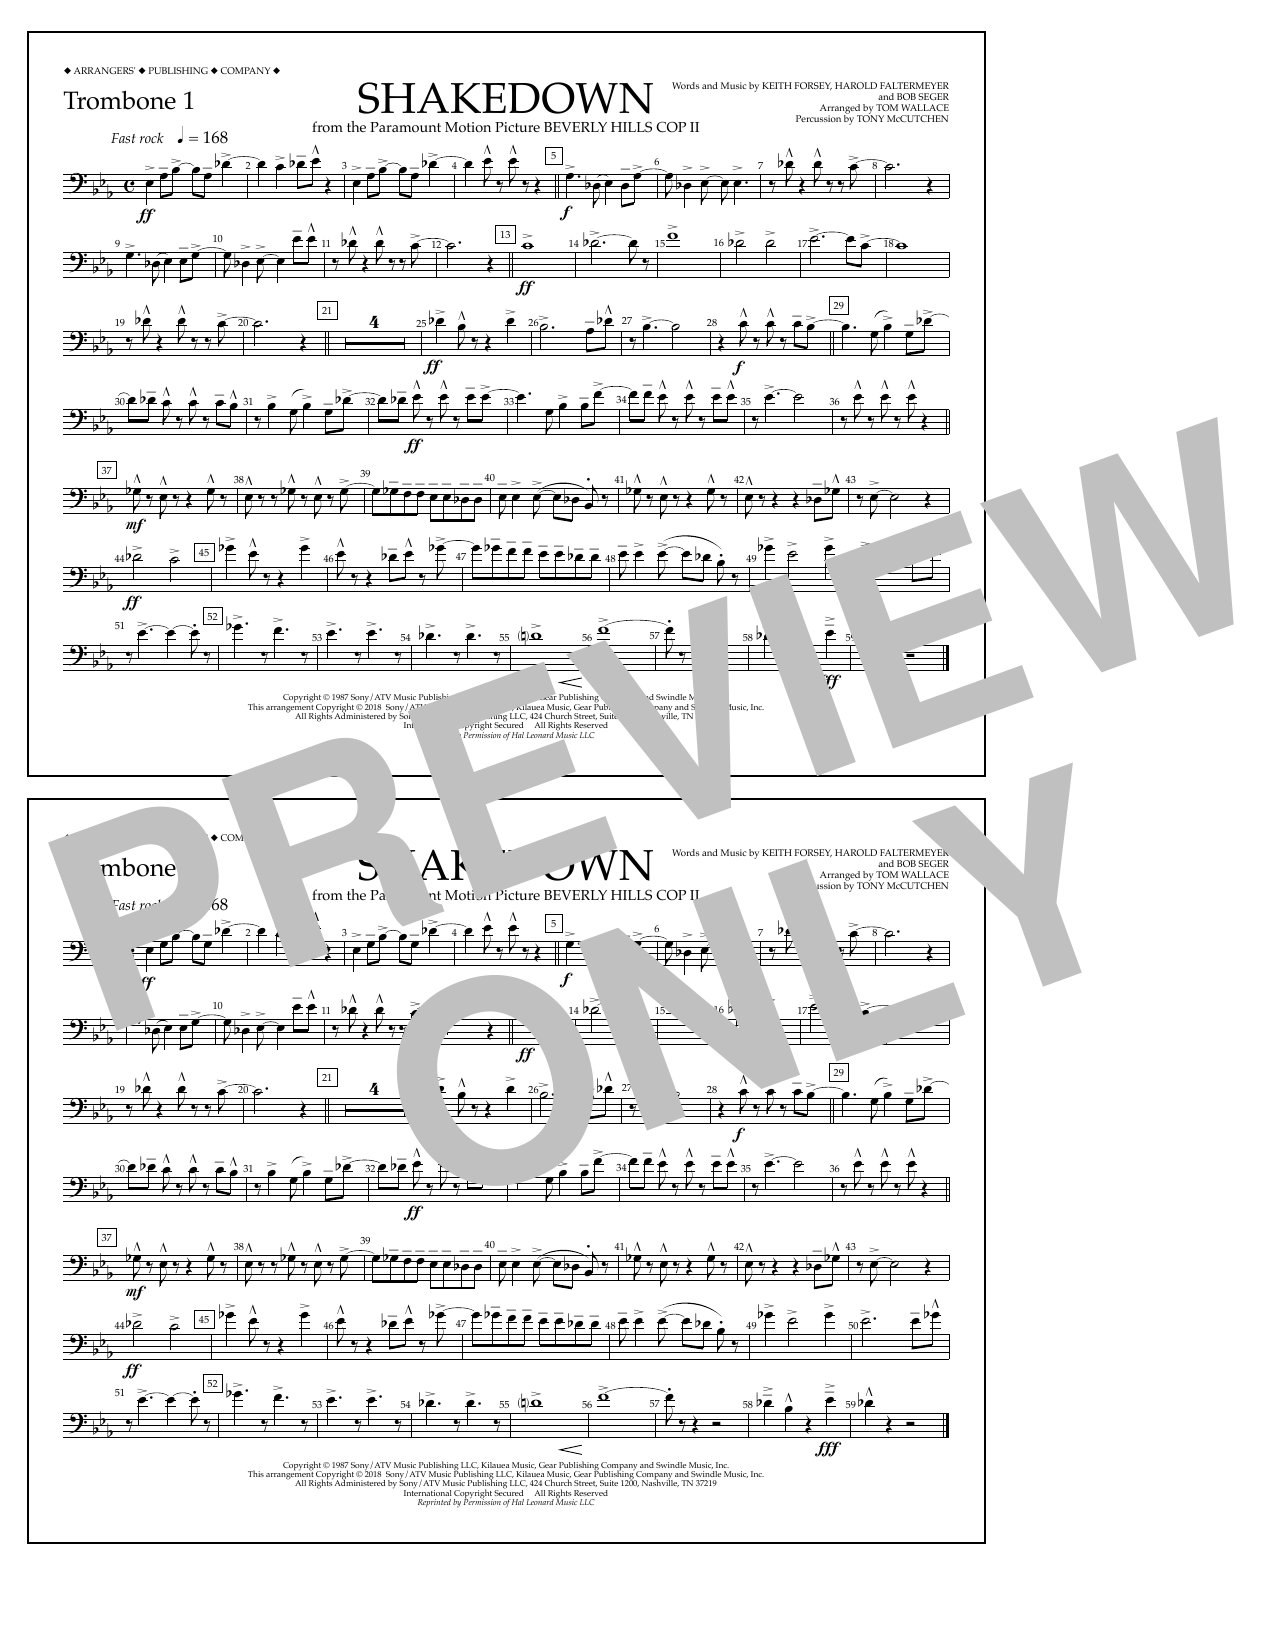 Tom Wallace Shakedown - Trombone 1 sheet music notes and chords. Download Printable PDF.